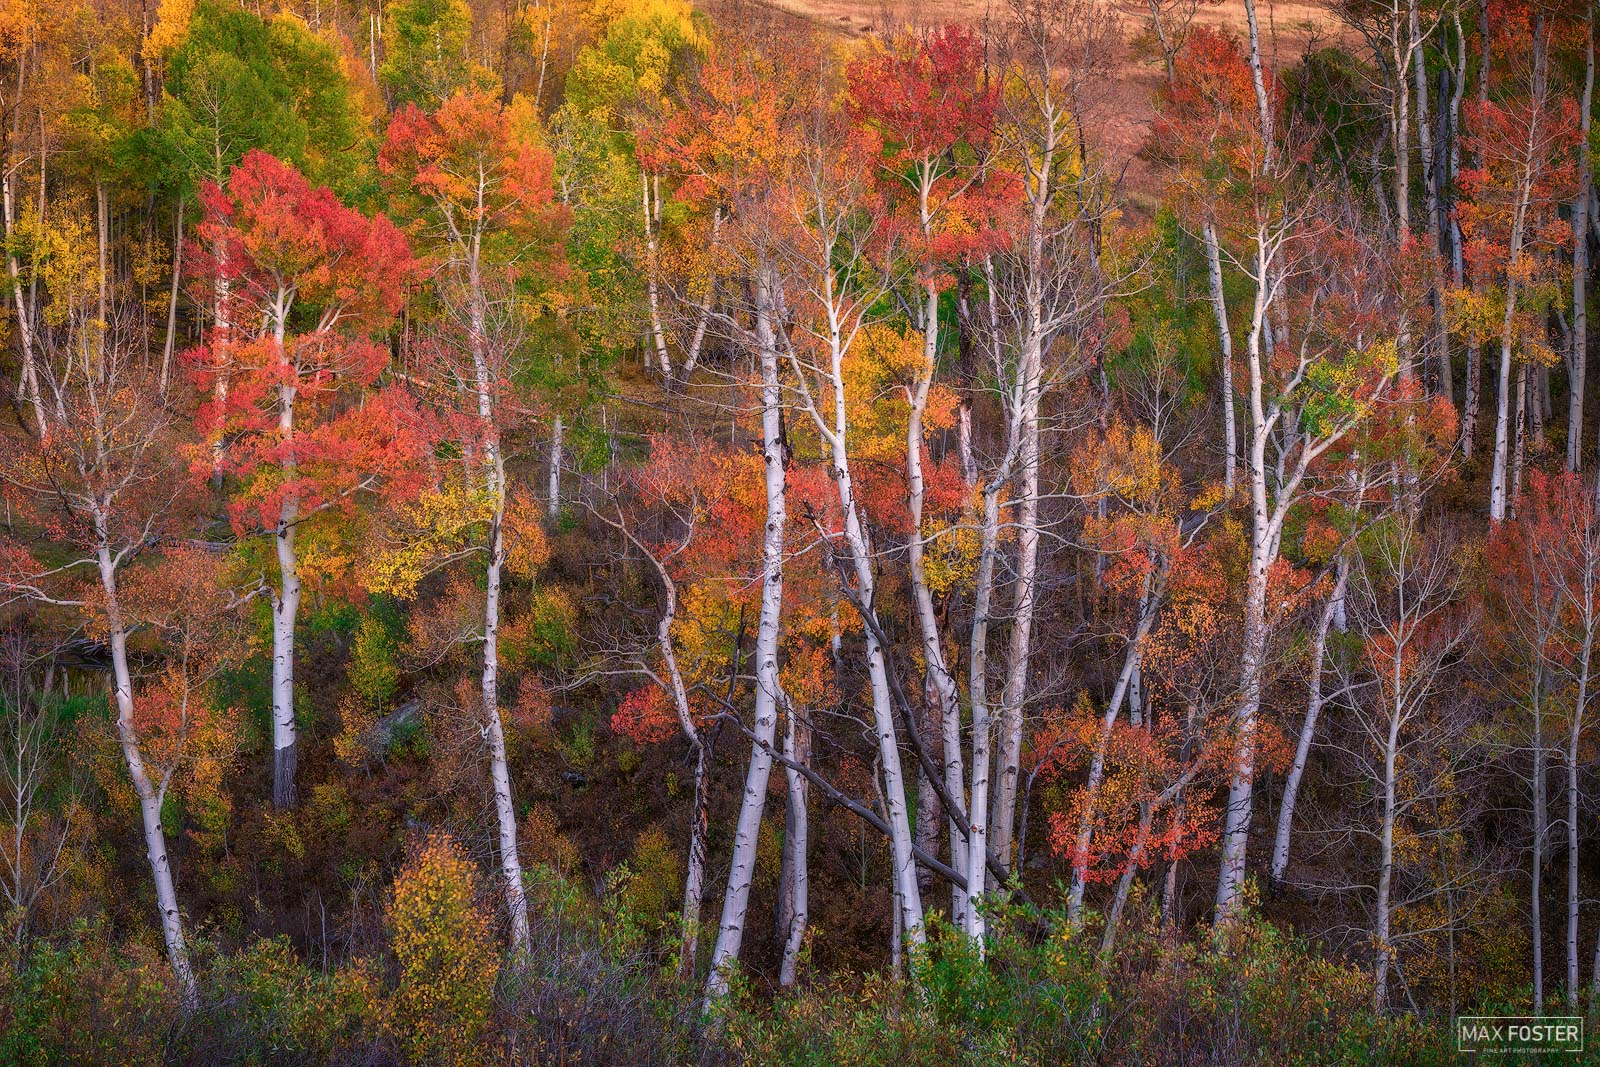 Fine Art Limited Edition of 50 Aspen Trees or populus tremuloides are a deciduous tree native to cooler areas of North America...